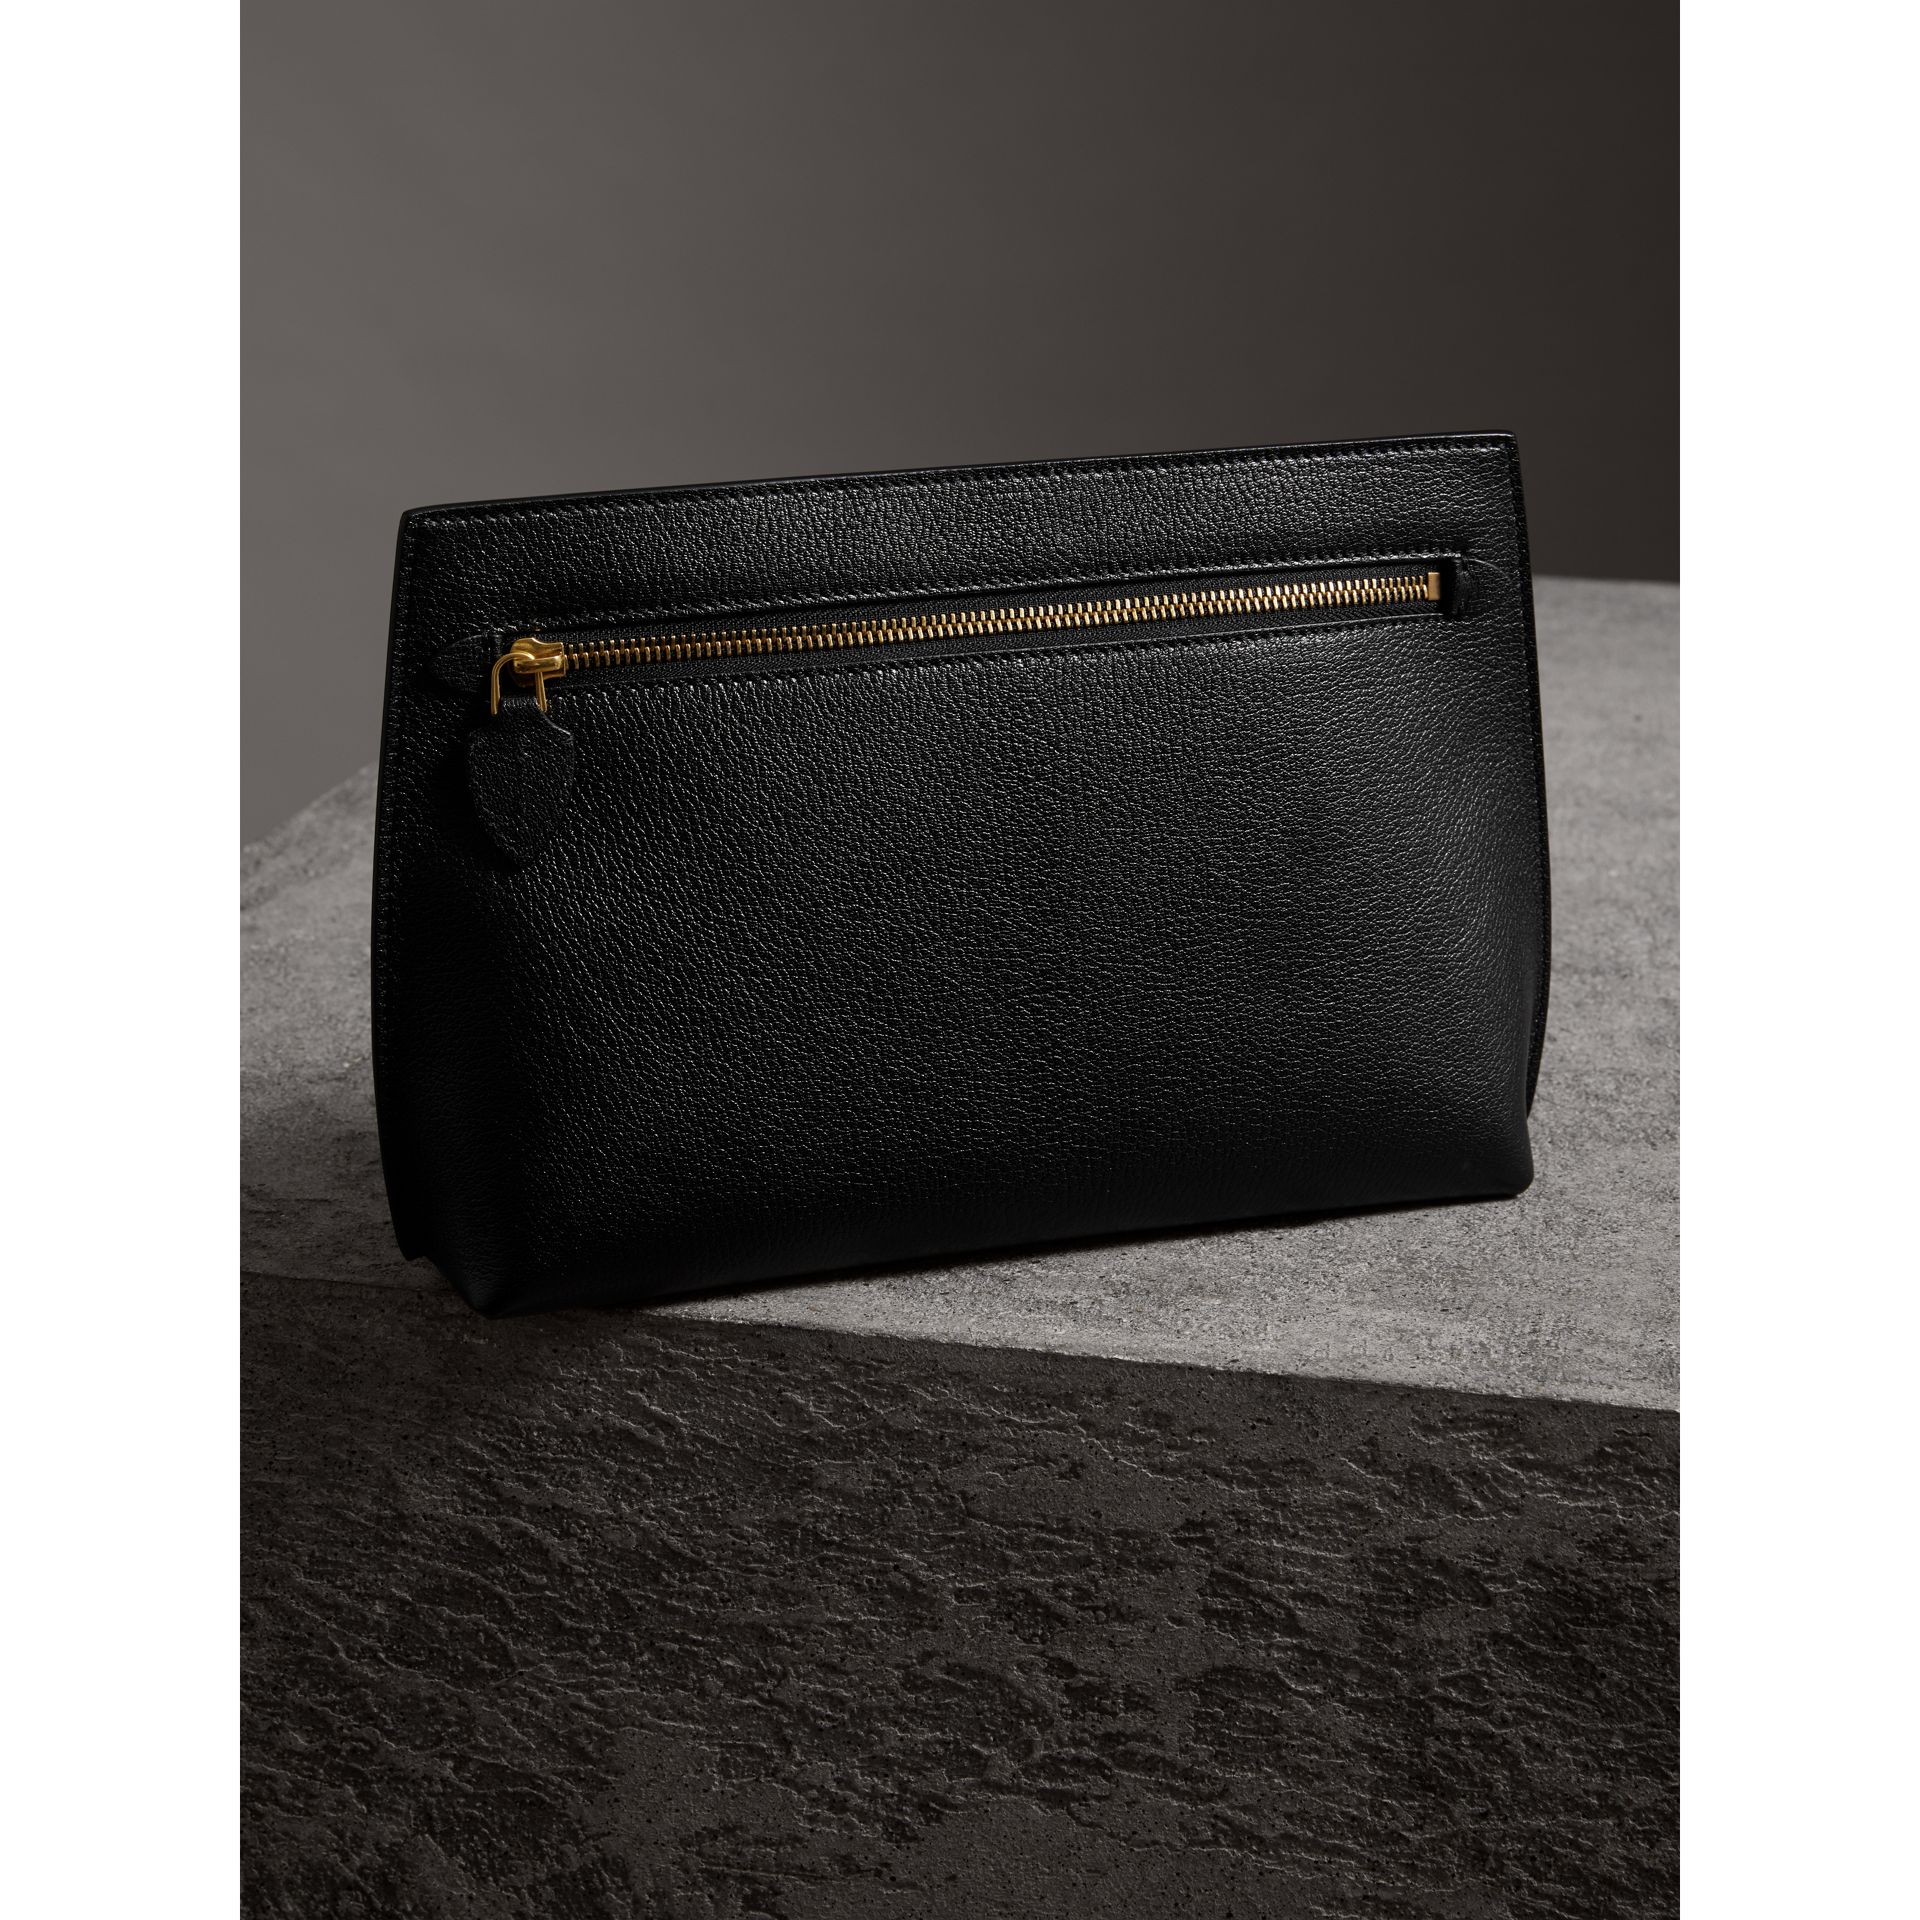 Grainy Leather Wristlet Clutch in Black - Women | Burberry - gallery image 4